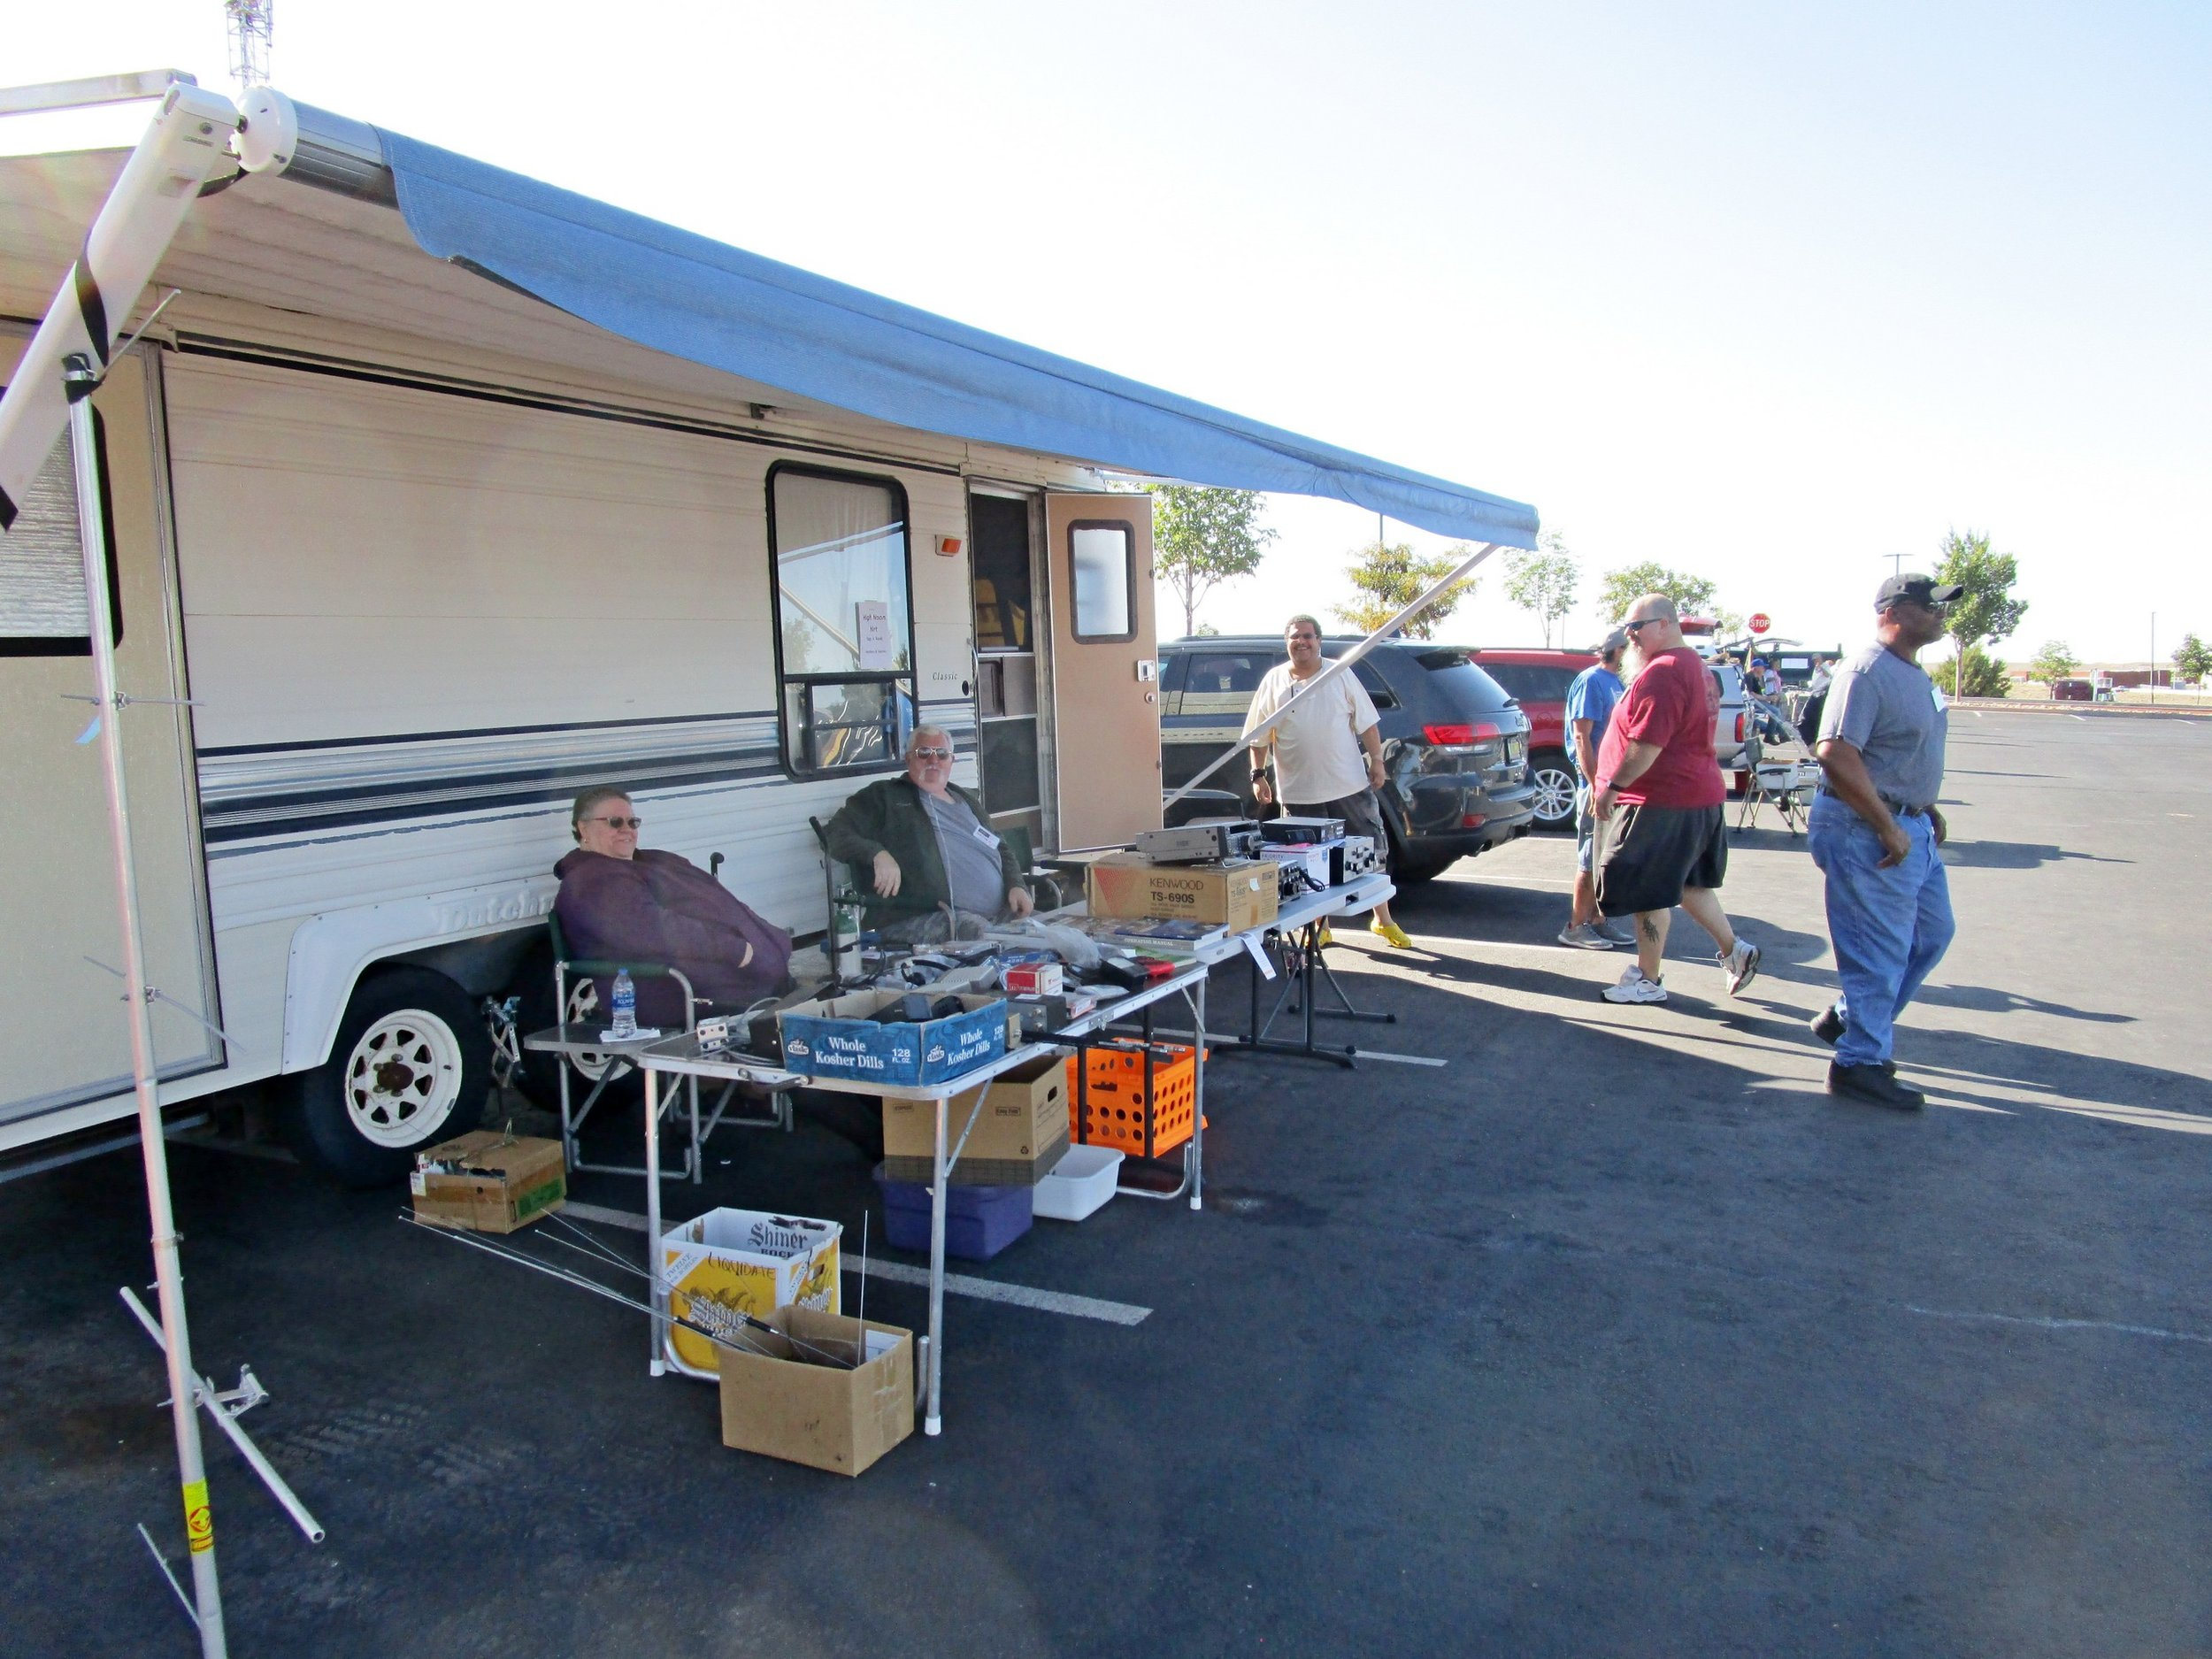 Bruce NK5W and wife's setup at the outdoor flea market.  Looks comfy!